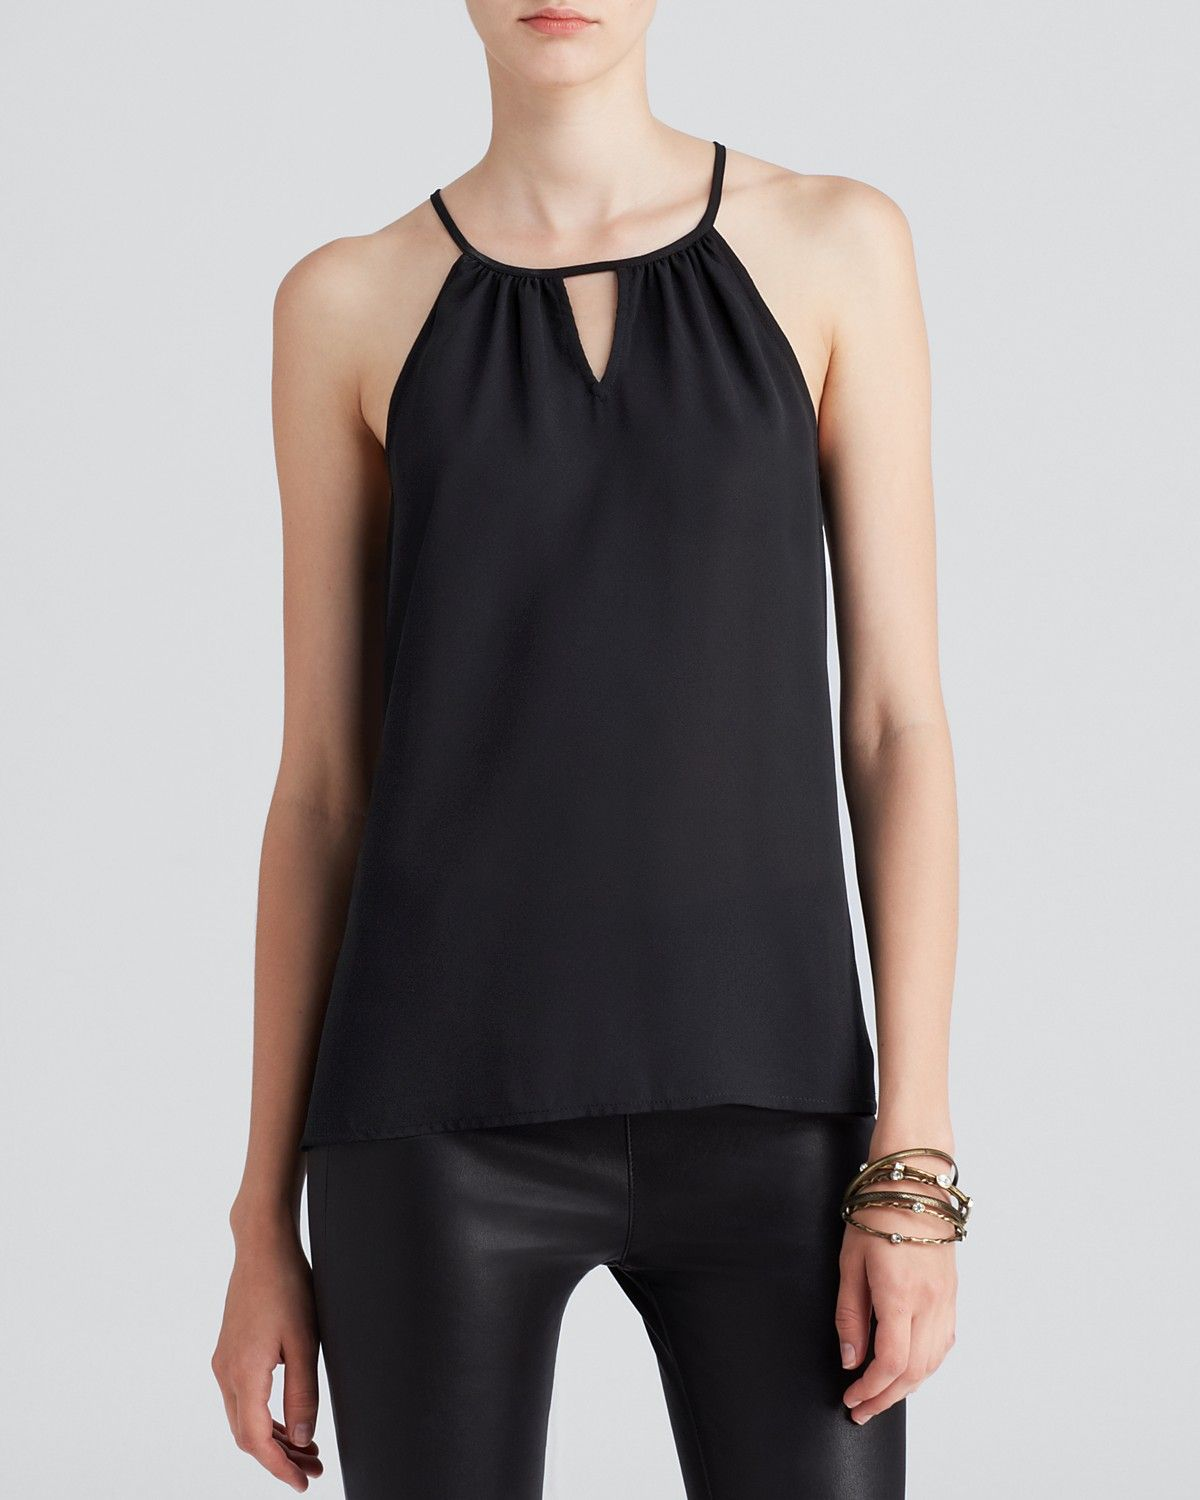 The simple black top you'll wear again and again.